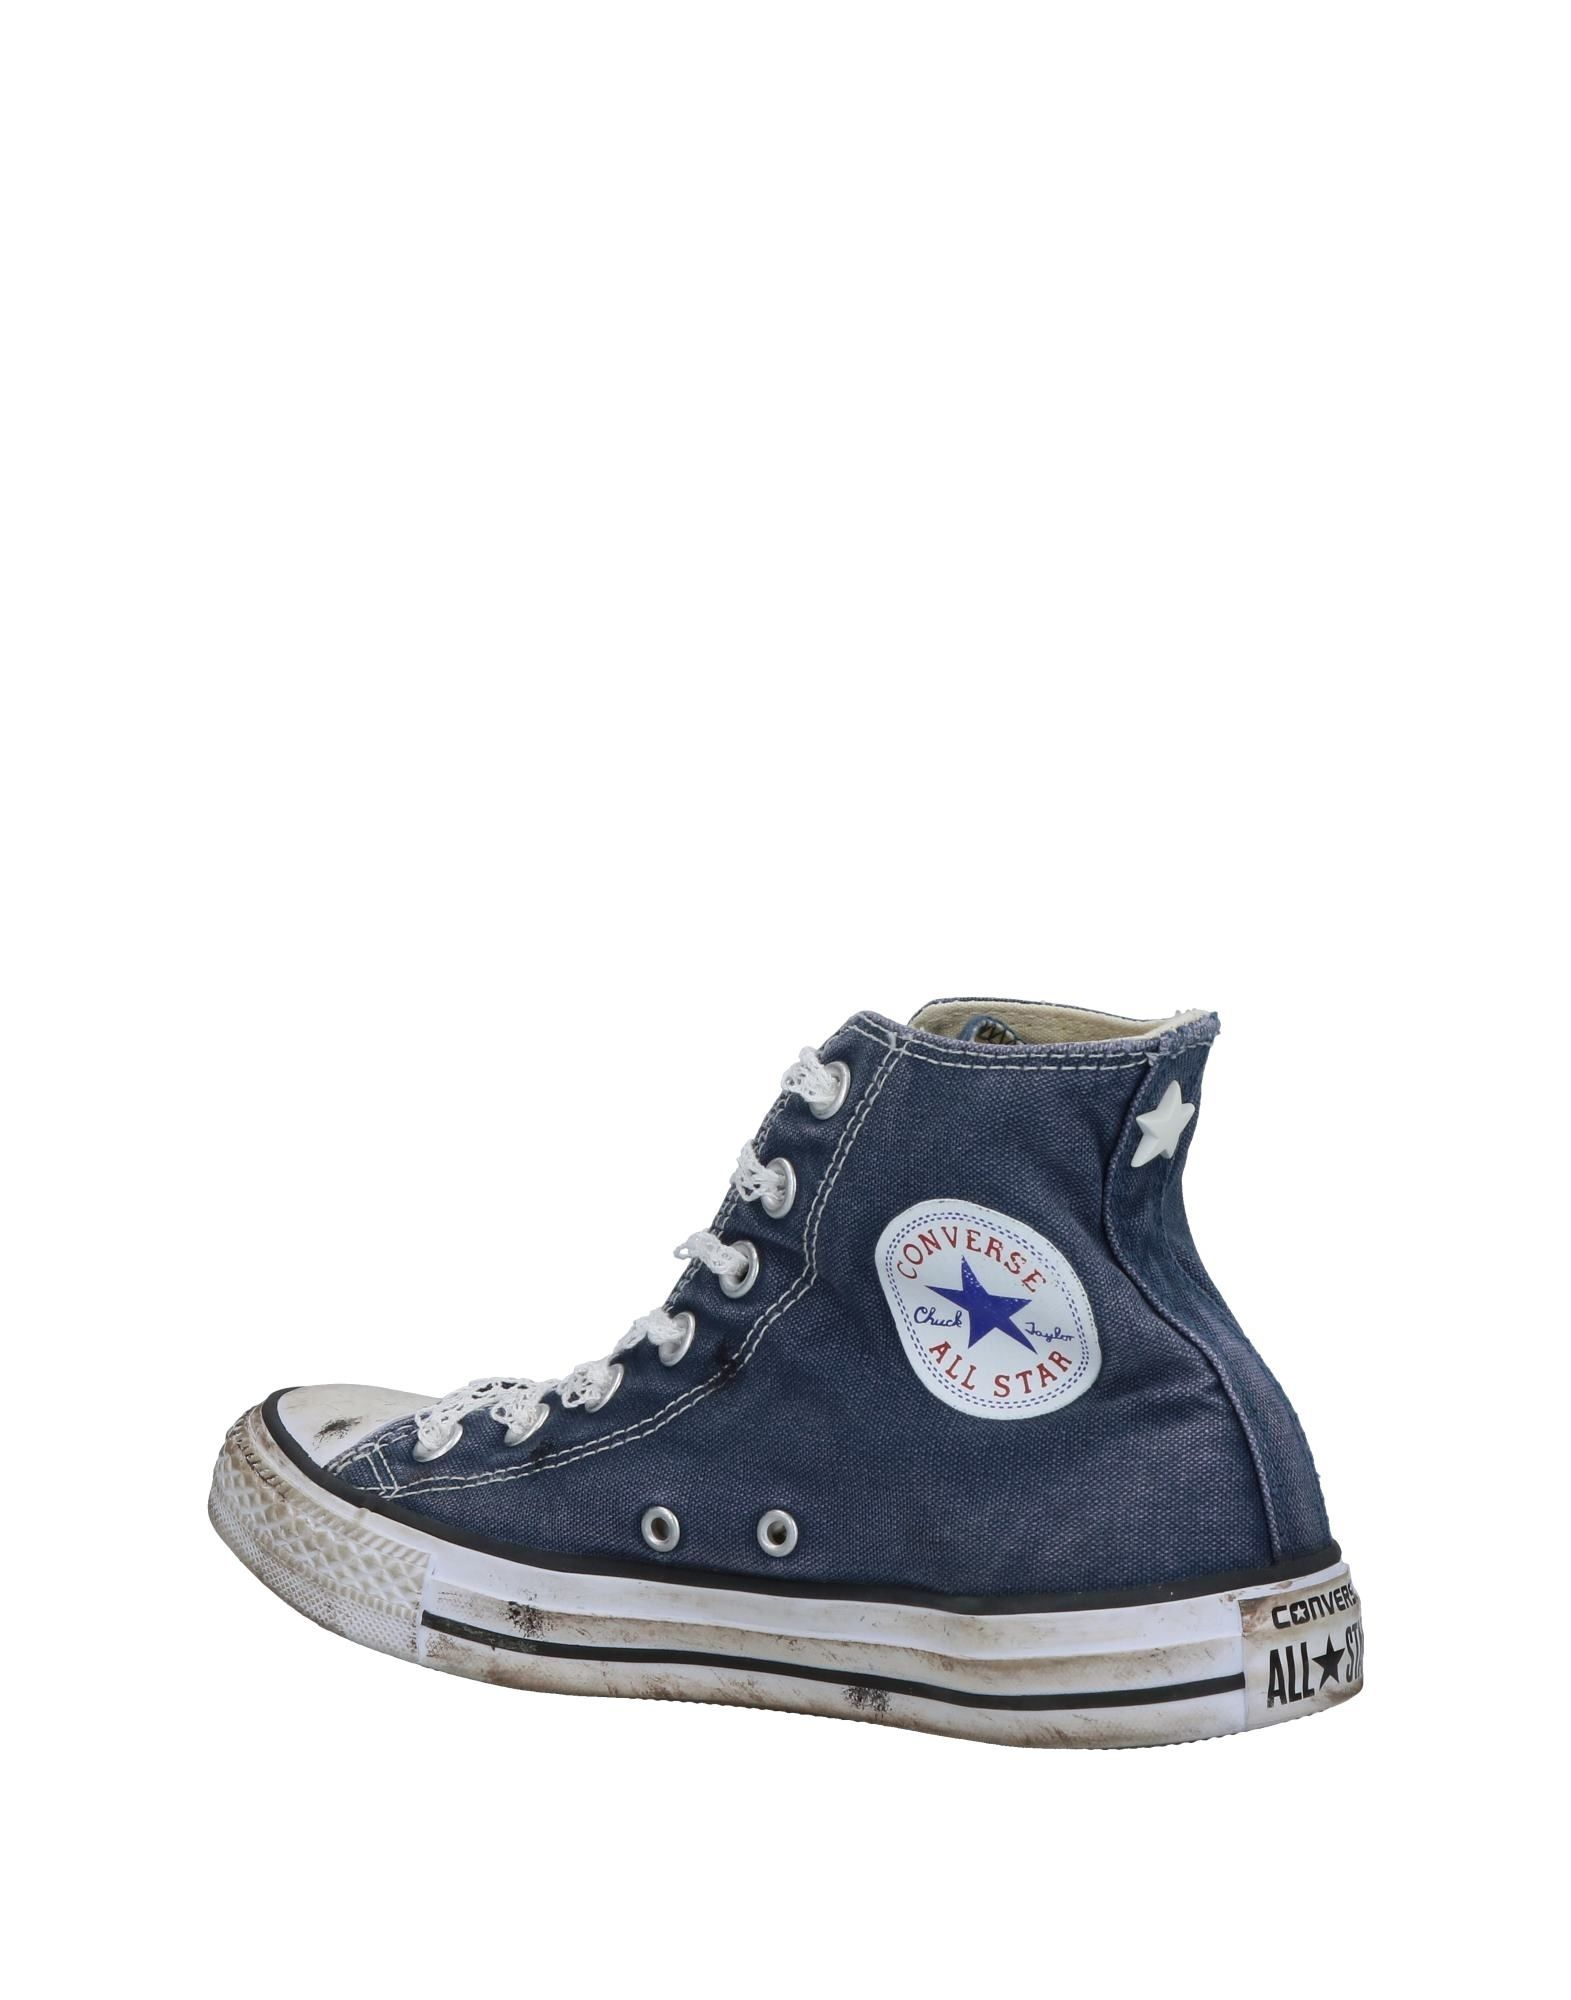 Converse Limited Edition Sneakers Sneakers Sneakers - Women Converse Limited Edition Sneakers online on  United Kingdom - 11379162BX 043d0e